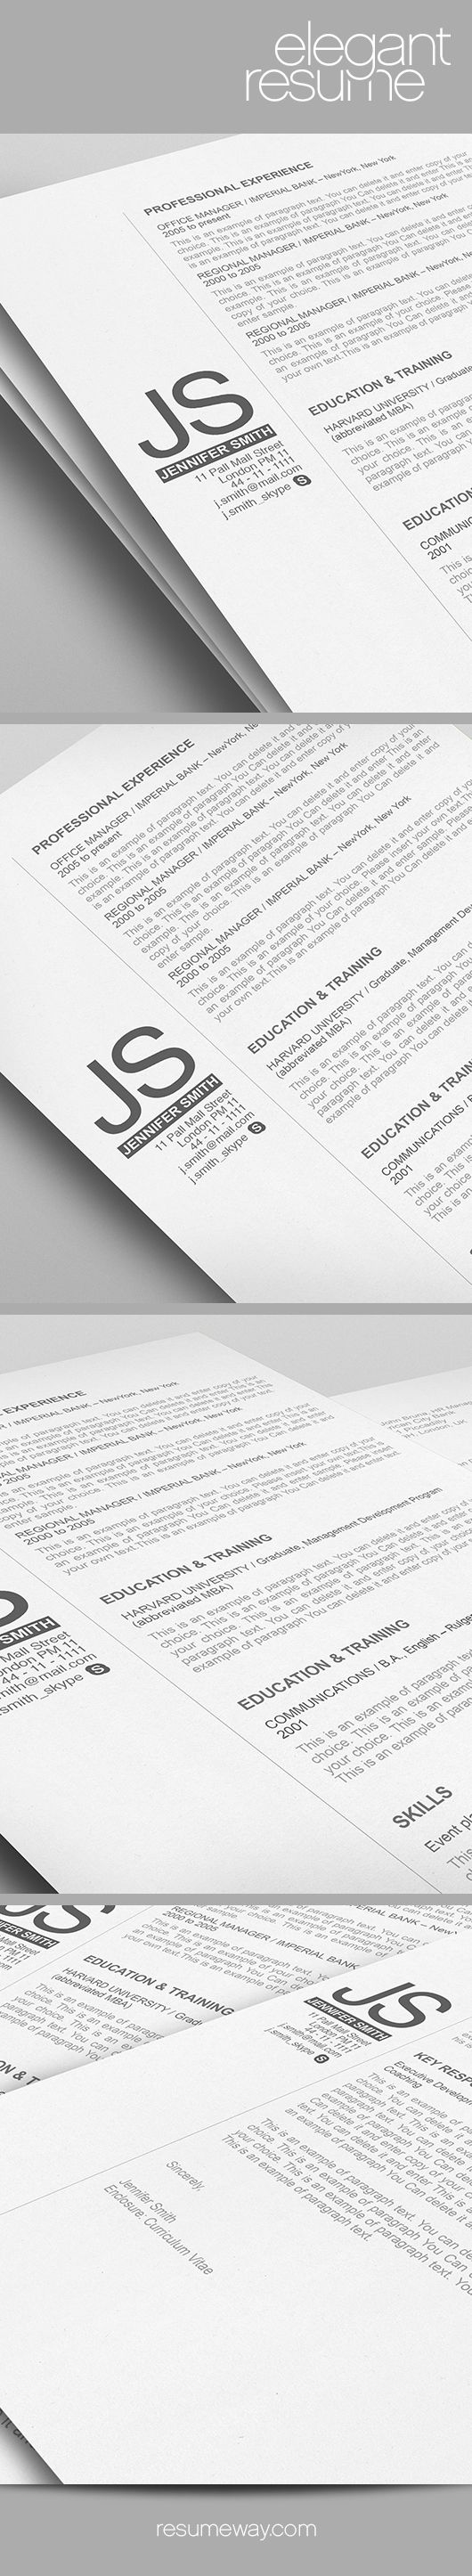 elegant resume template - 110540